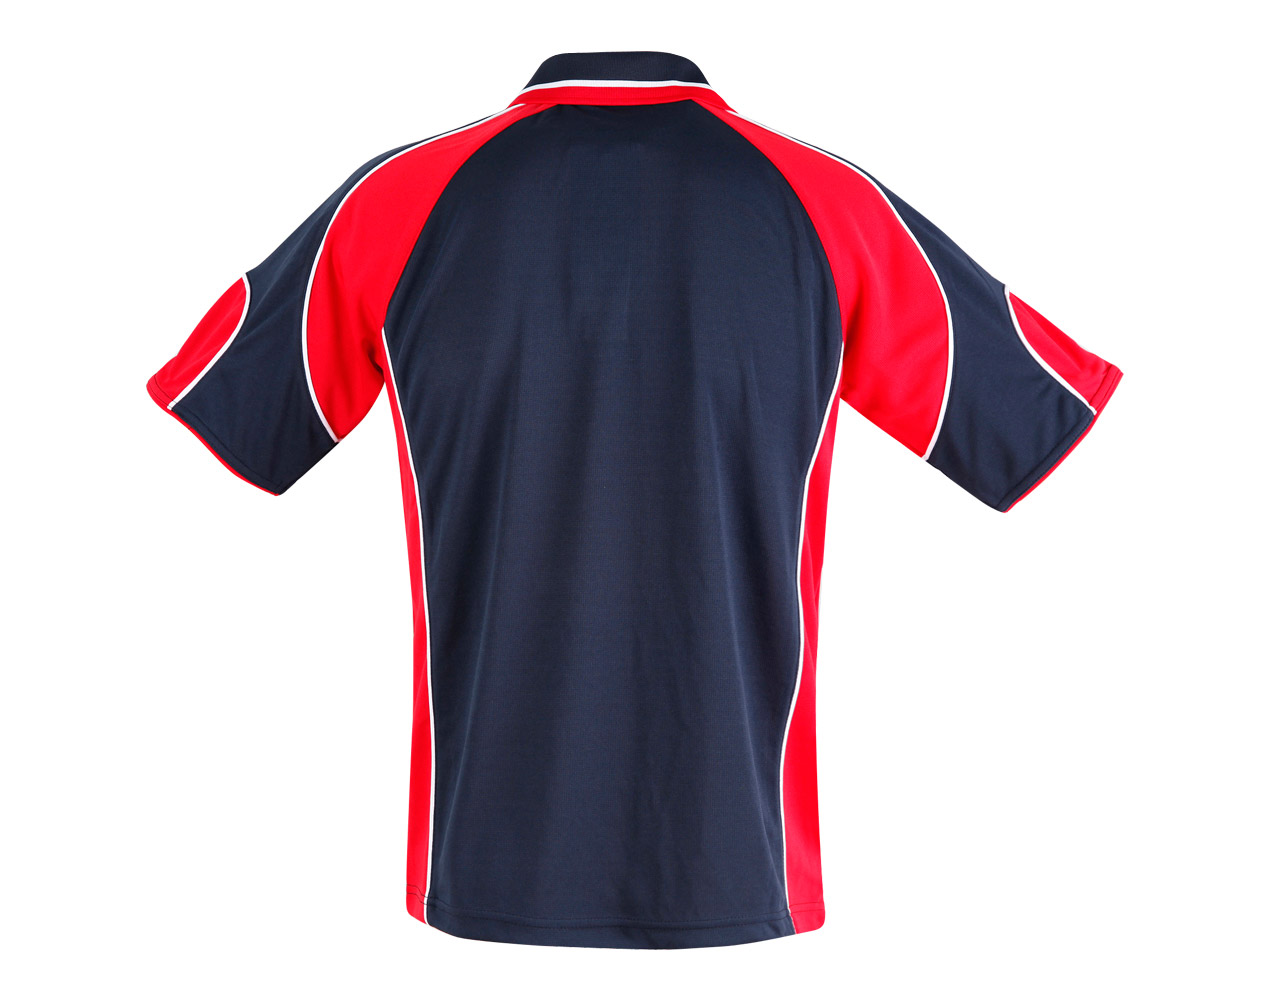 https://s3-ap-southeast-1.amazonaws.com/ws-imgs/POLOSHIRTS/PS61_NavyRed_Back.jpg